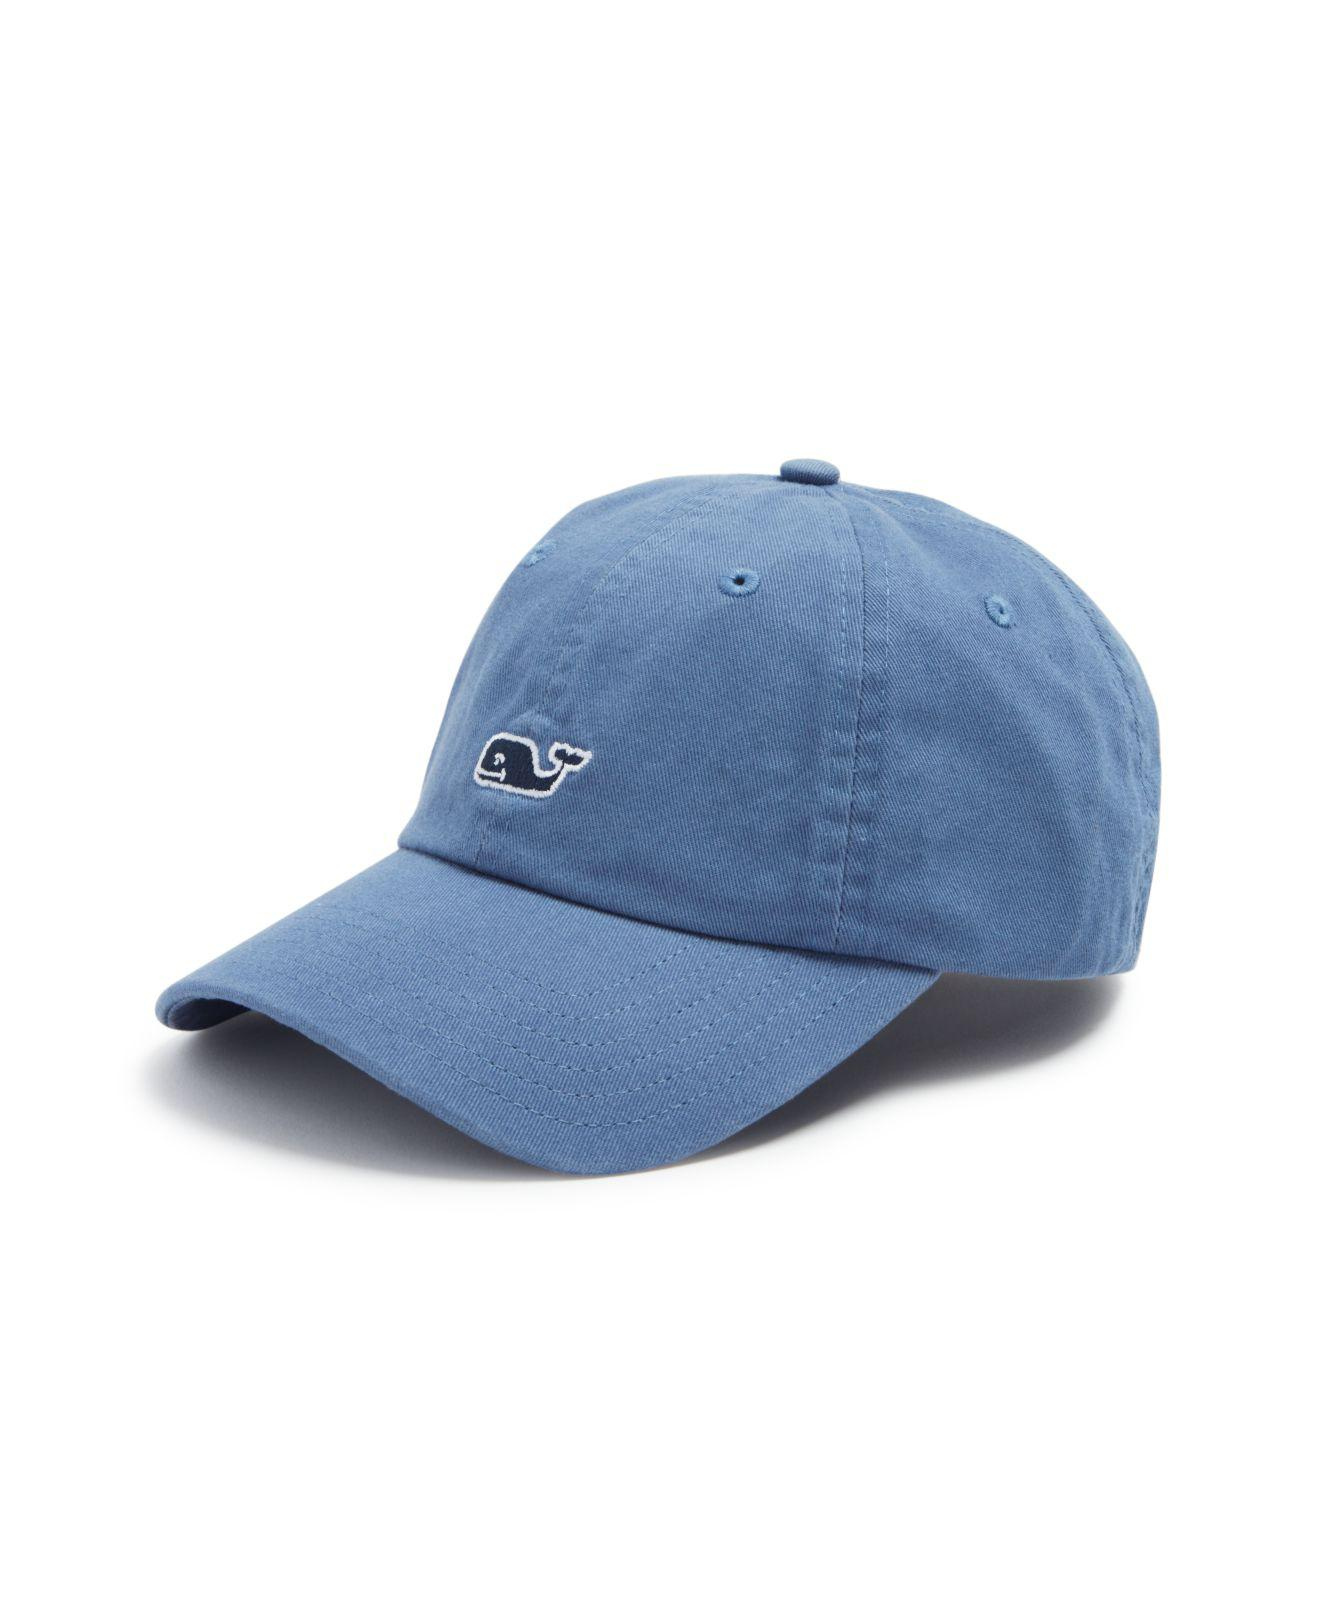 Vineyard Vines Classic Baseball Cap in Blue for Men - Lyst 2b78b250ec02